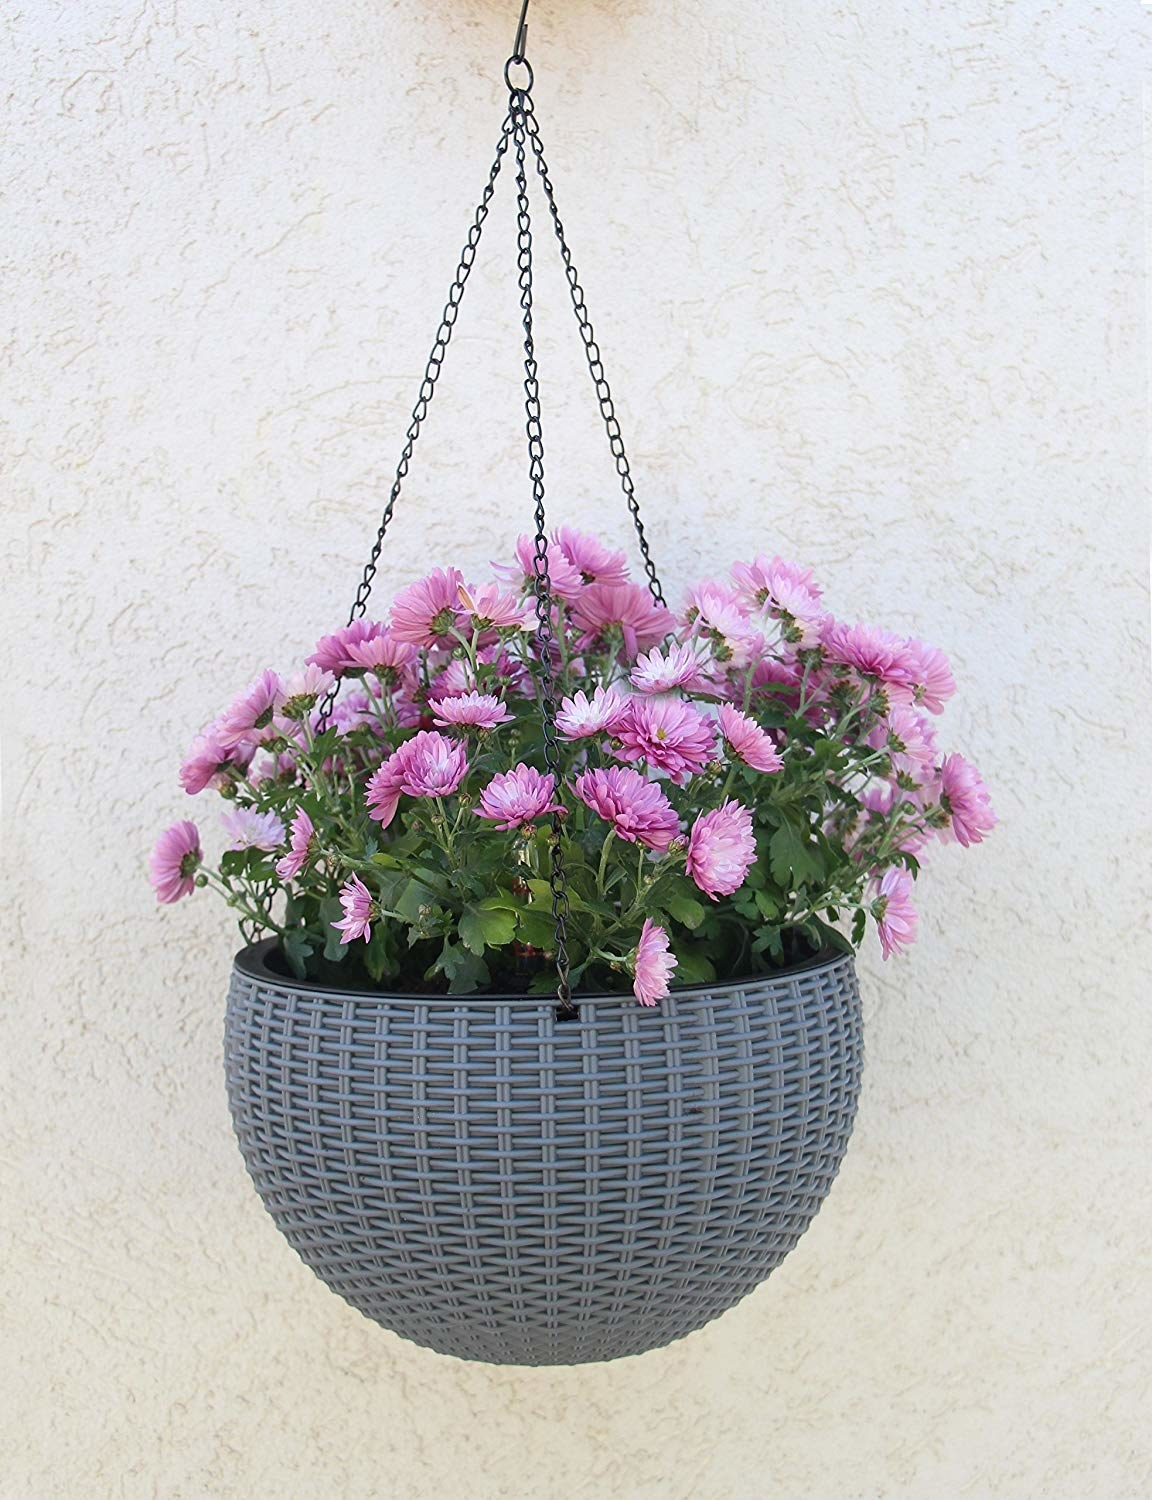 Self-watering wicker hanging plant in gray